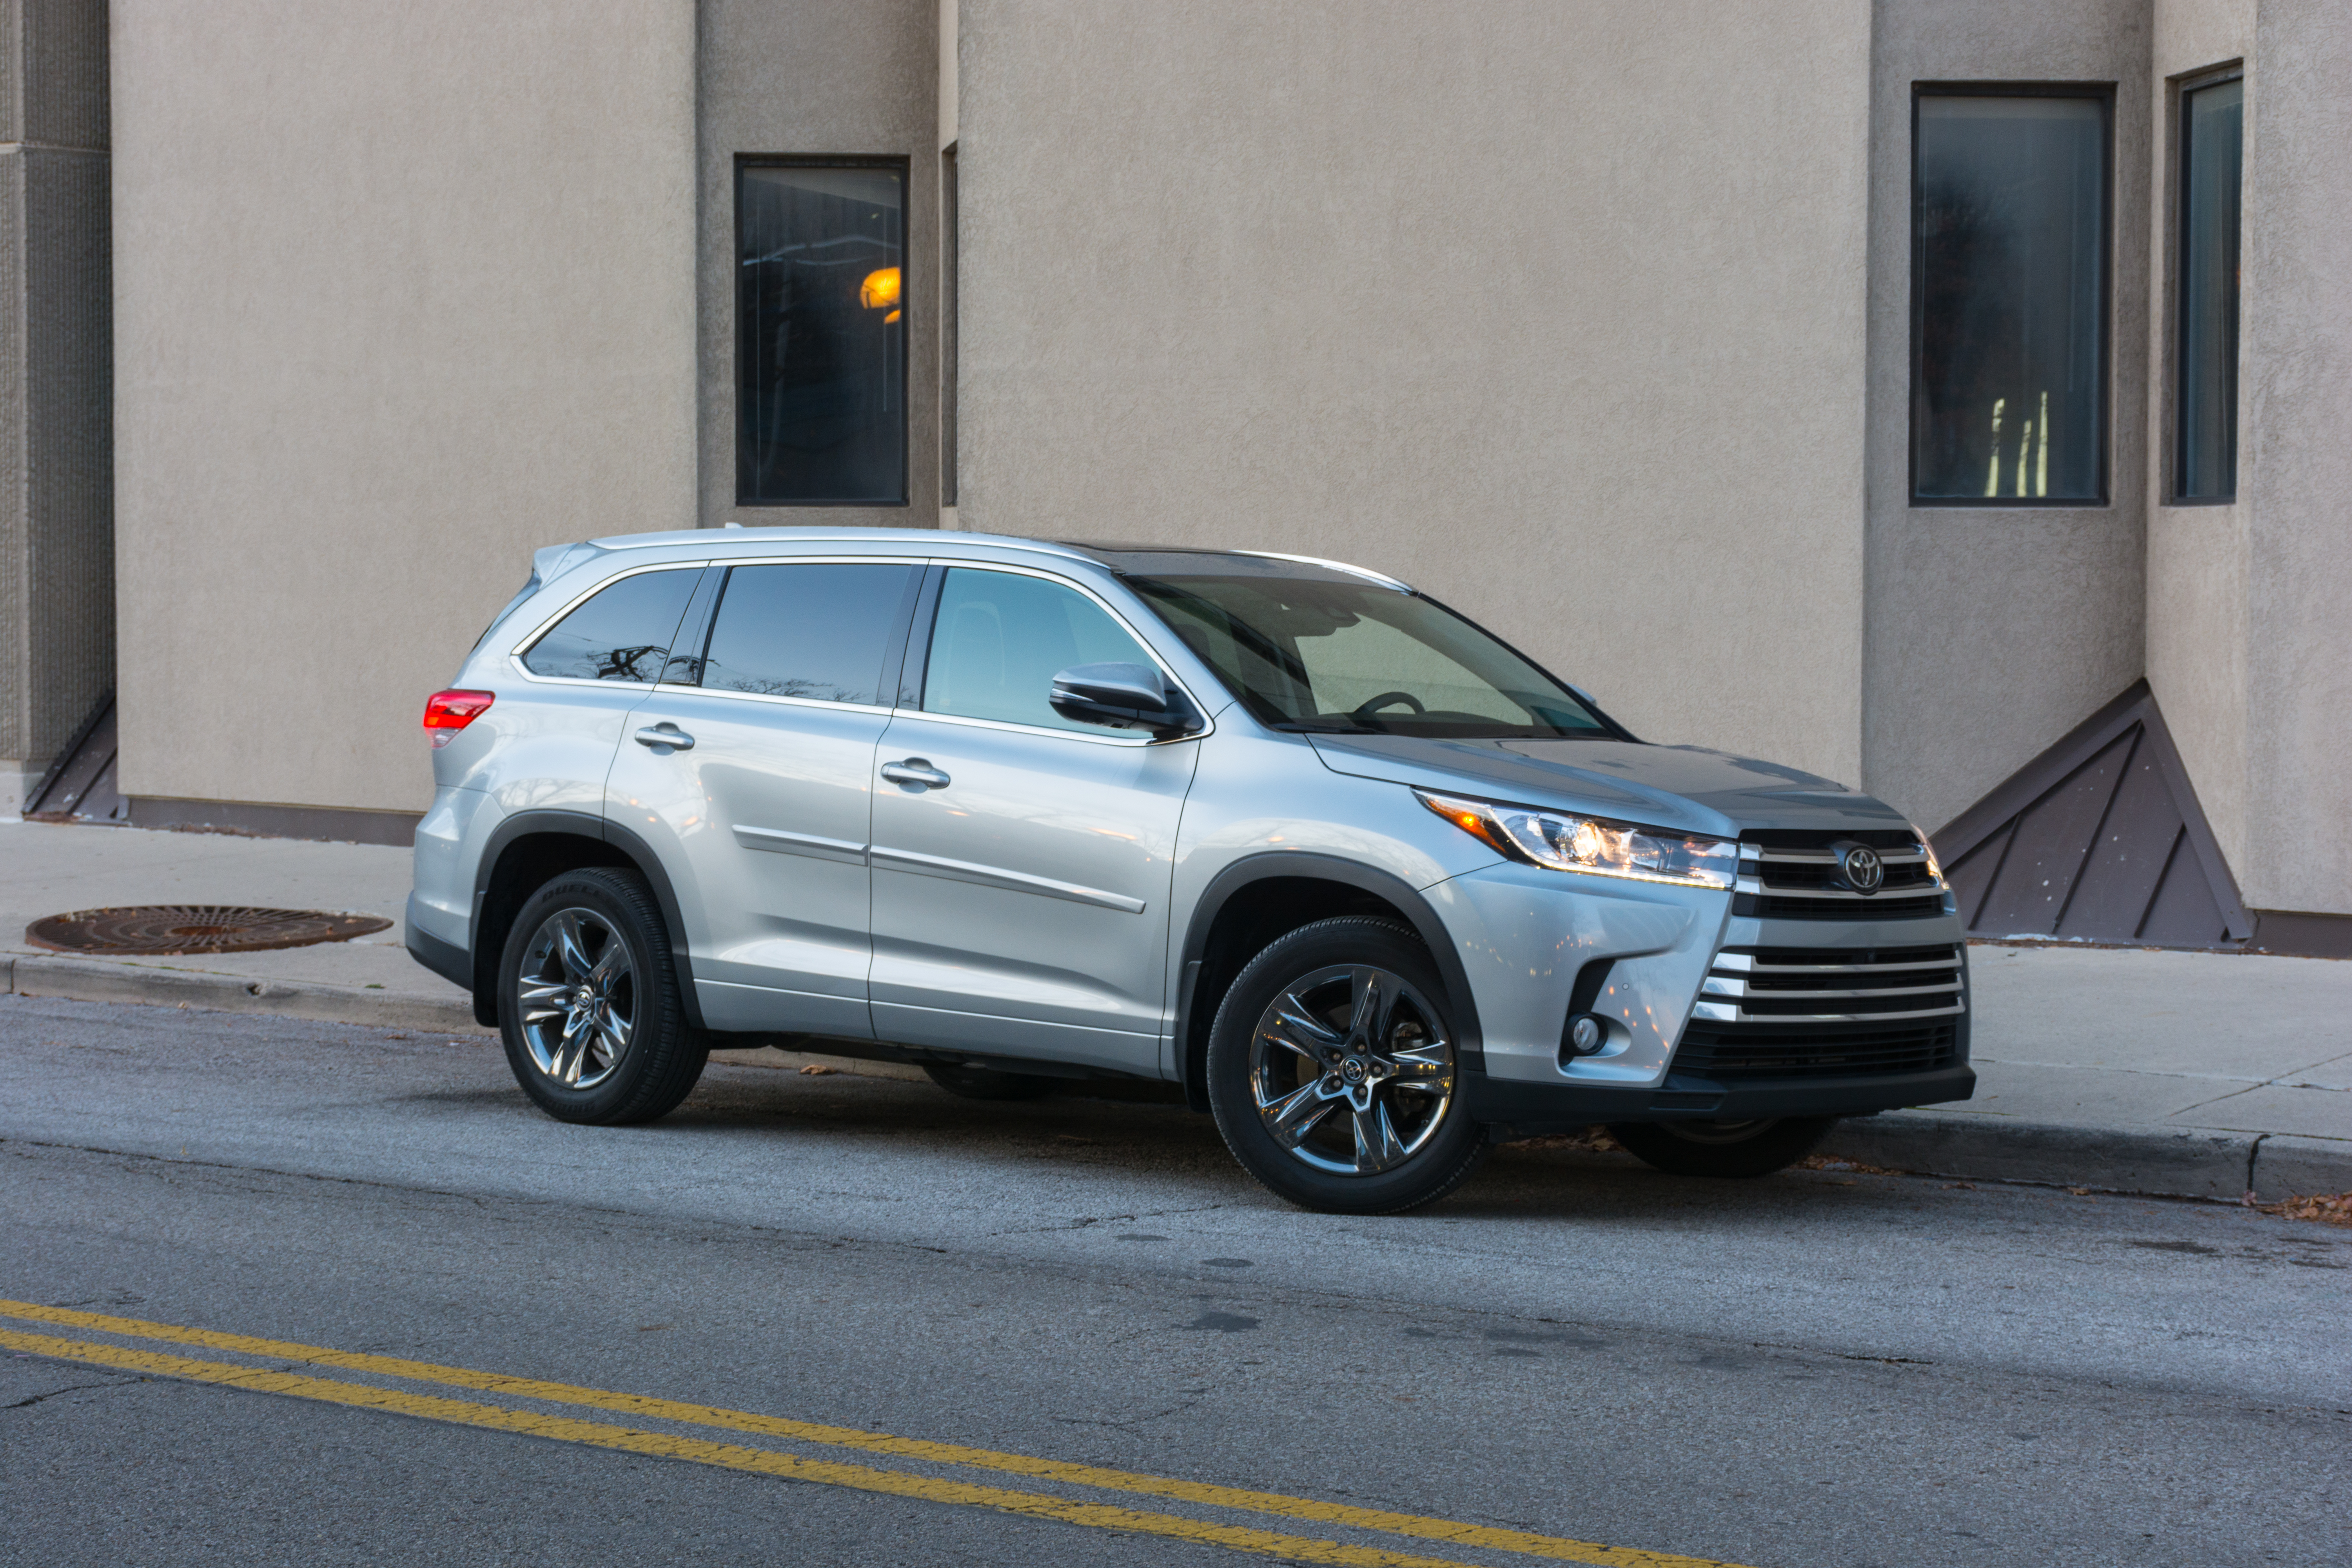 2017 Toyota Highlander Limited Platinum Review The Family Truckster Updated